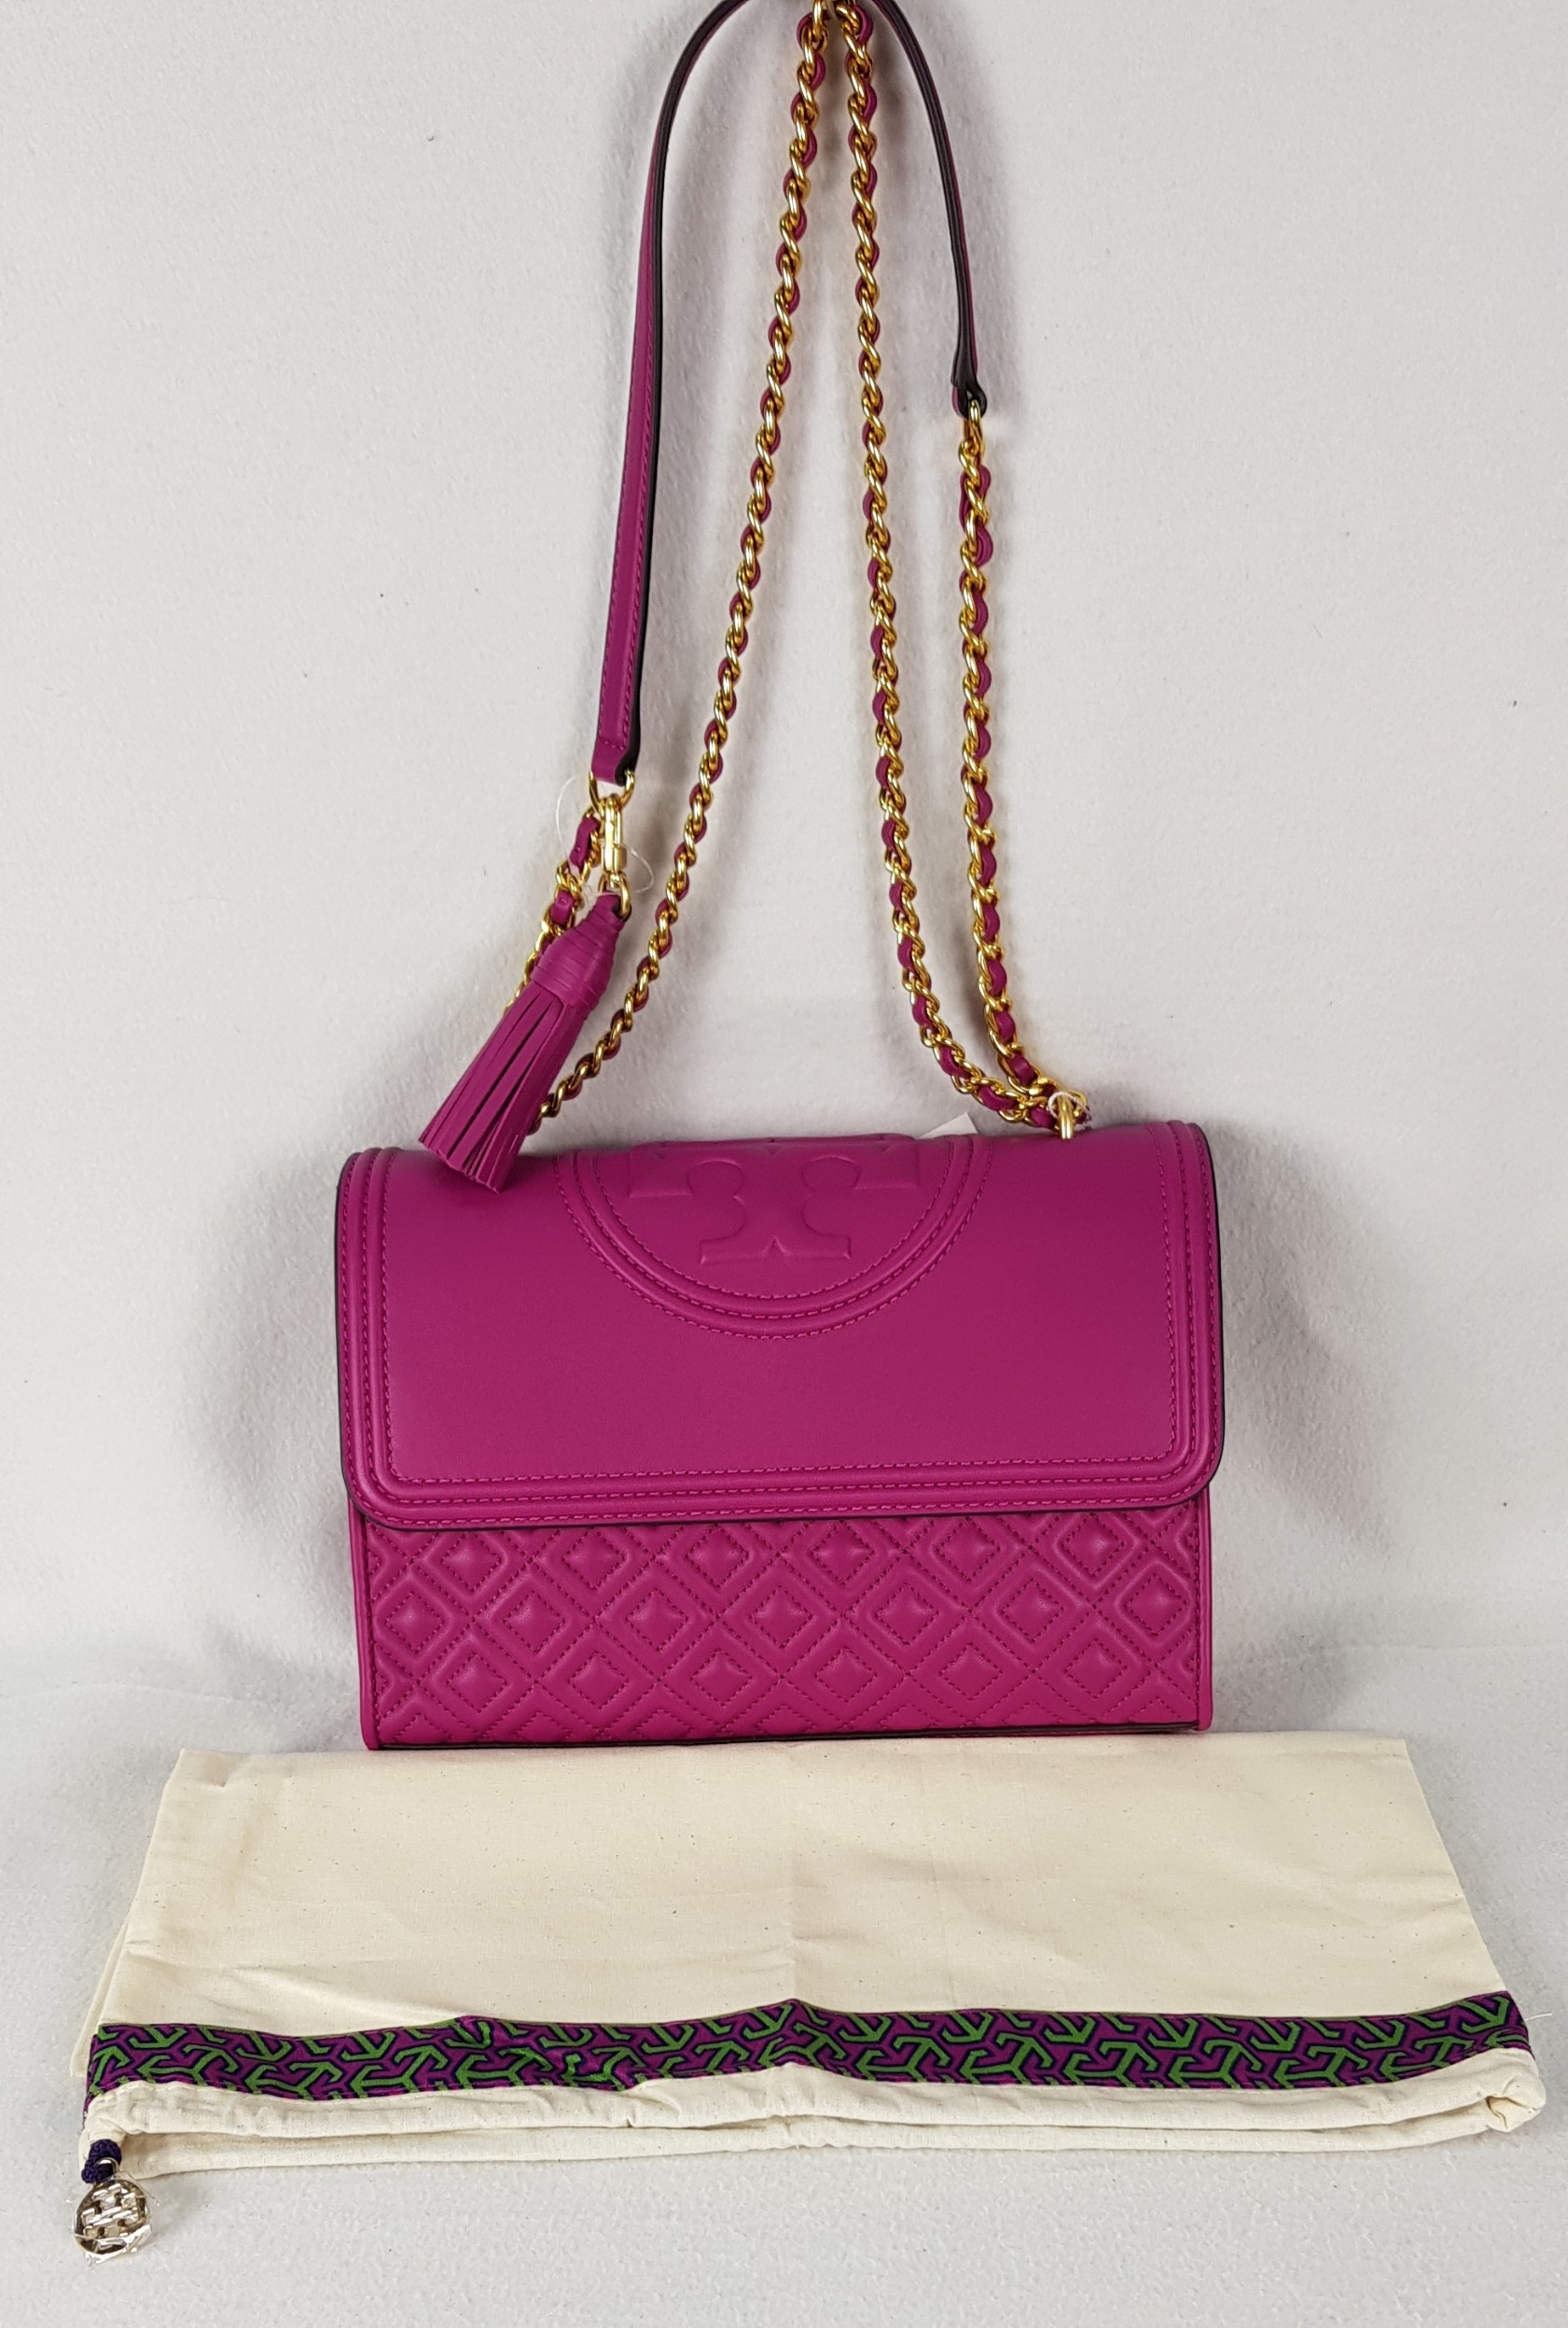 6b4e44bca7d6 TORY BURCH FLEMING CONVERTIBLE SHOULDER BAG PARTY FUCHSIA